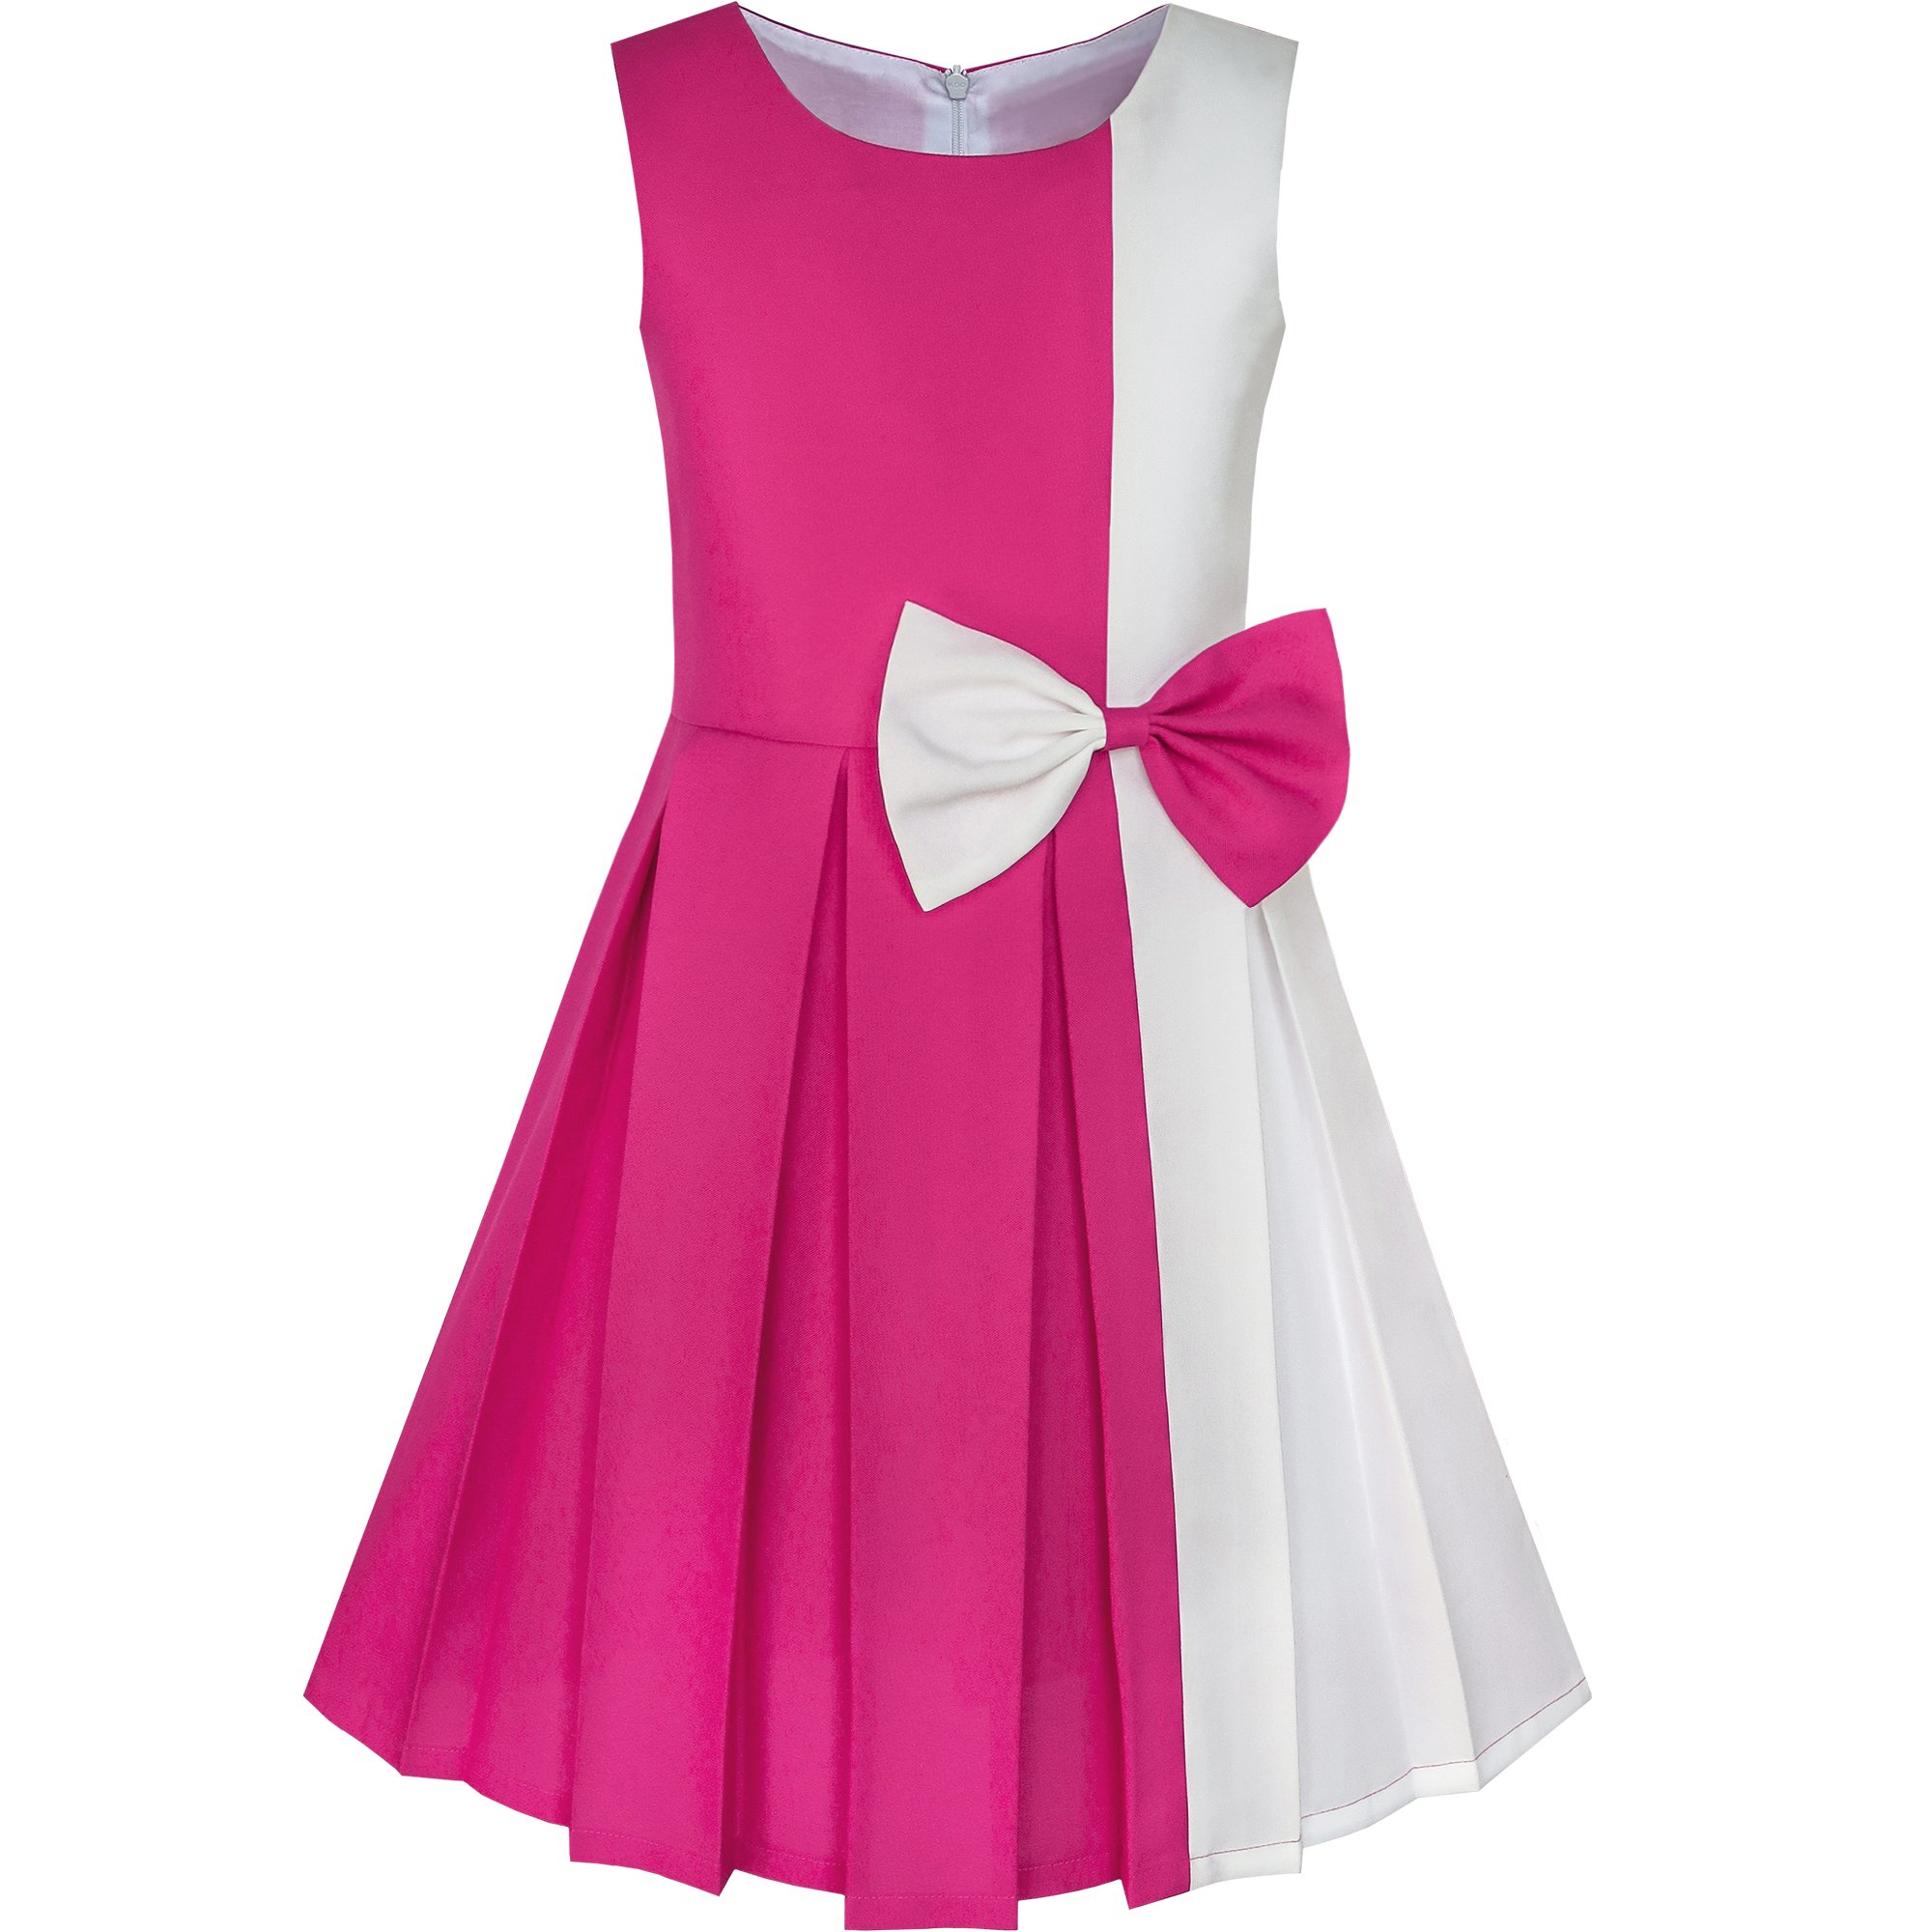 KE68 Girls Dress Color Block Contrast Bow Tie Everday Party Size 14